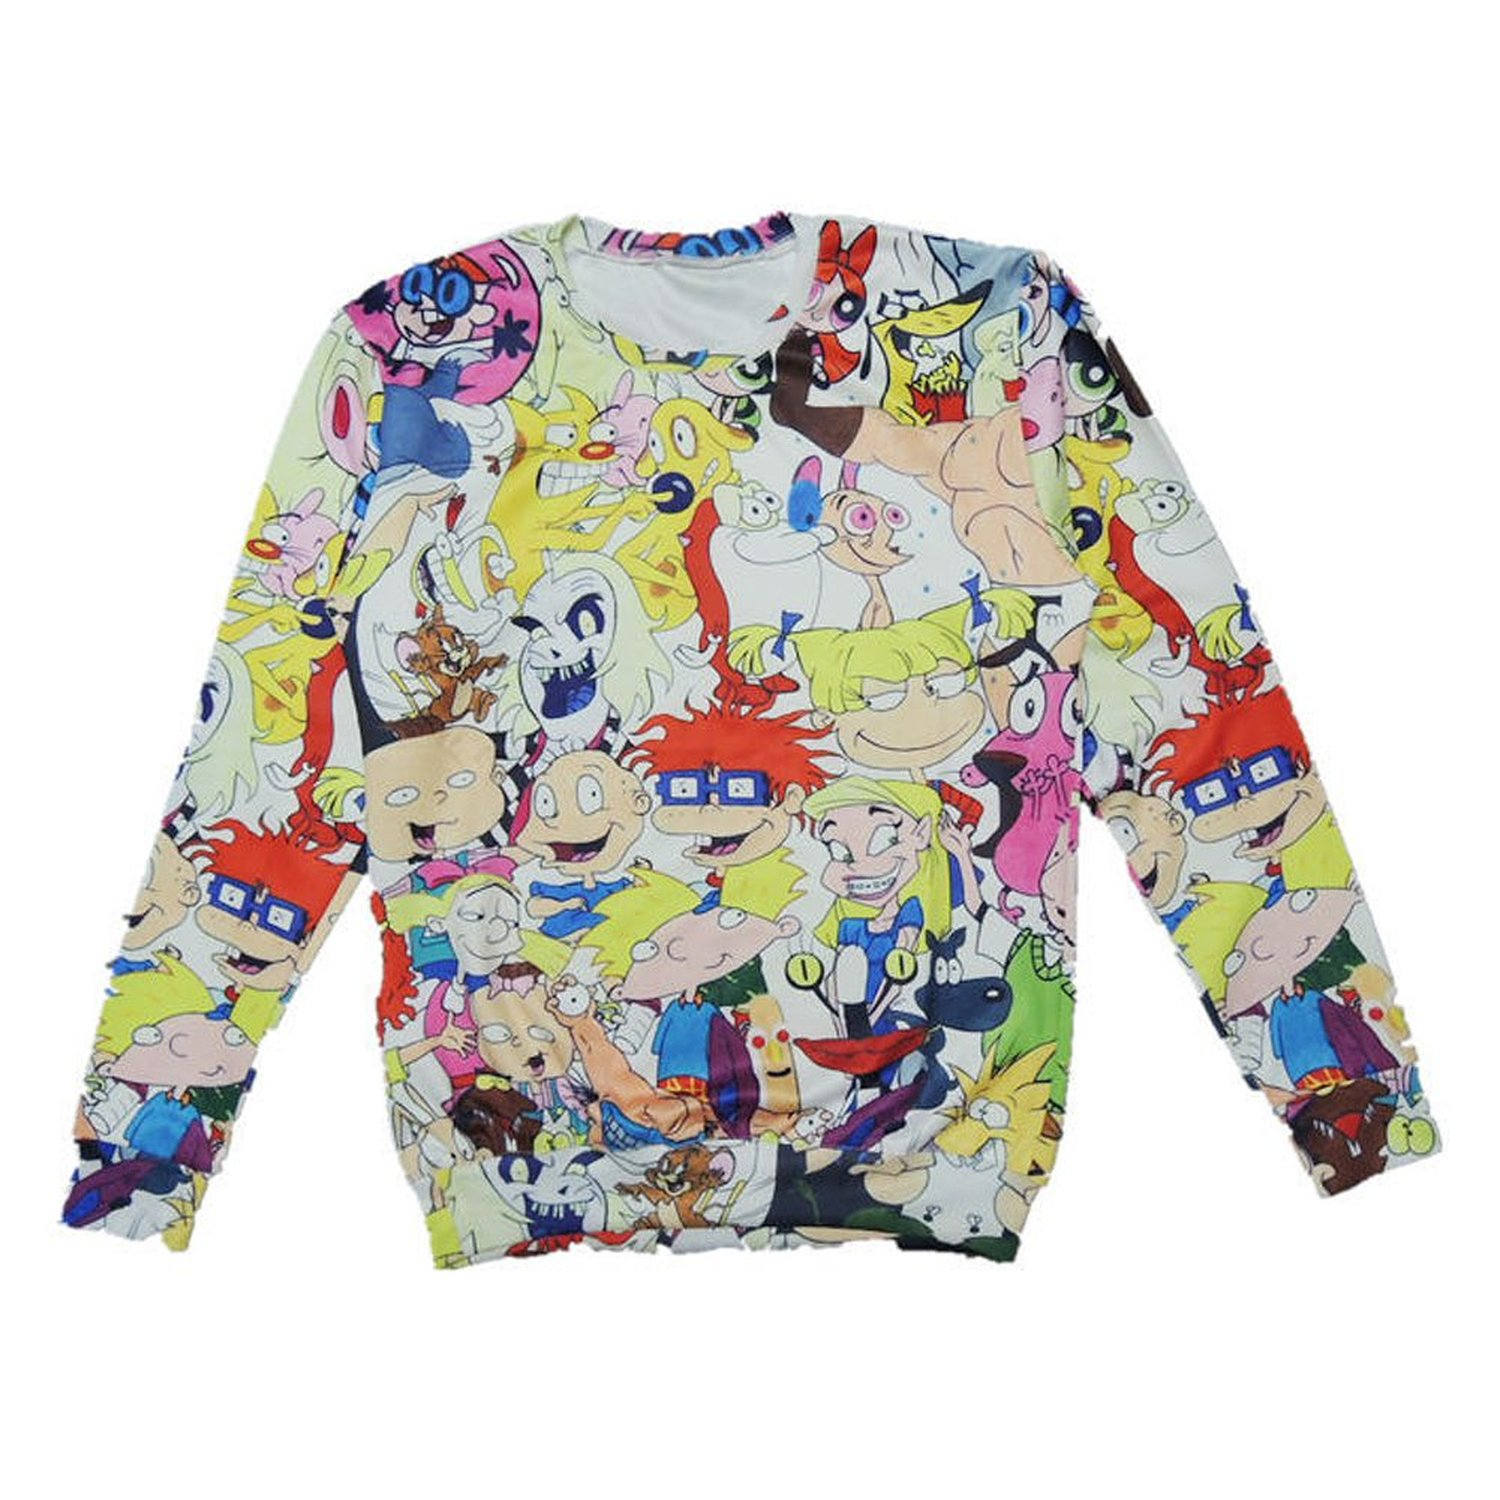 80Store Womens Cute 3D Cartoon Patterns Print Polyester Sweatshirt Sweater (L) at Amazon Women's Clothing store: